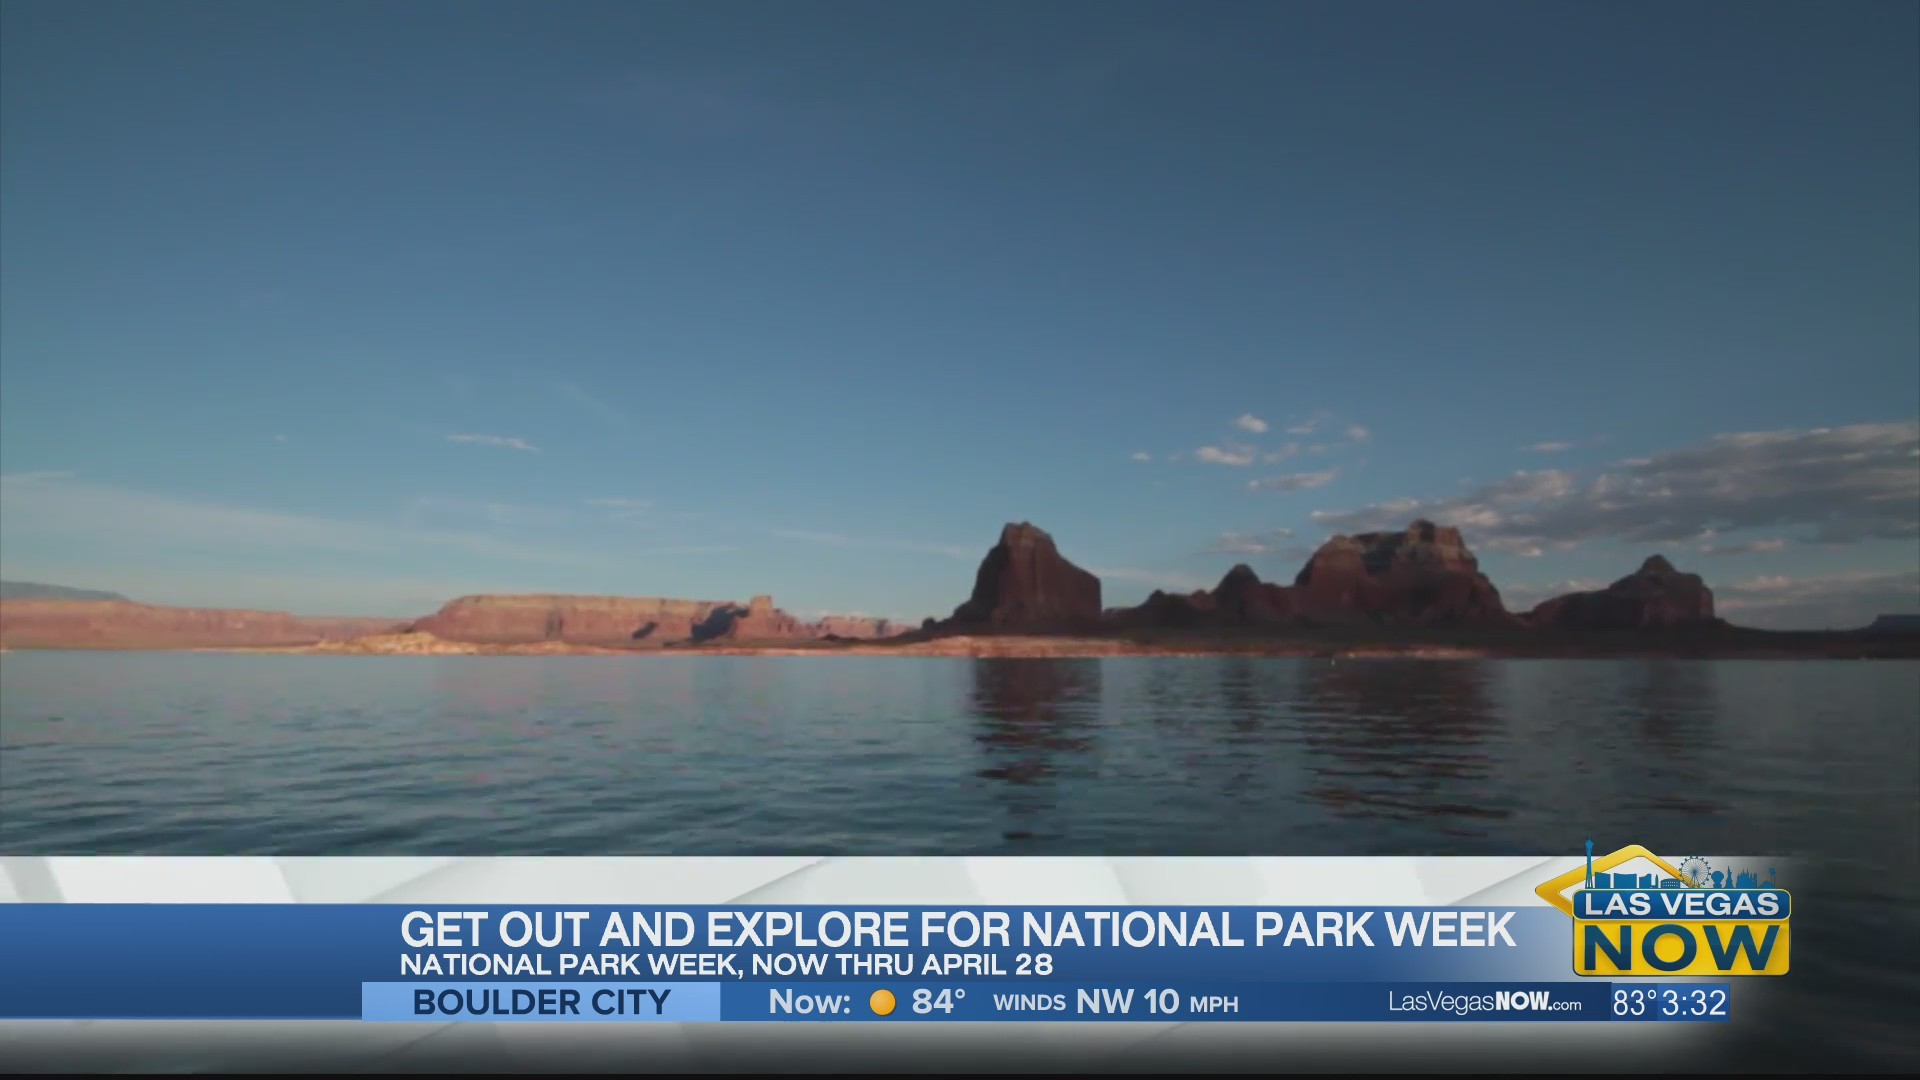 Get out and explore National Parks Weeks with TravelZoo